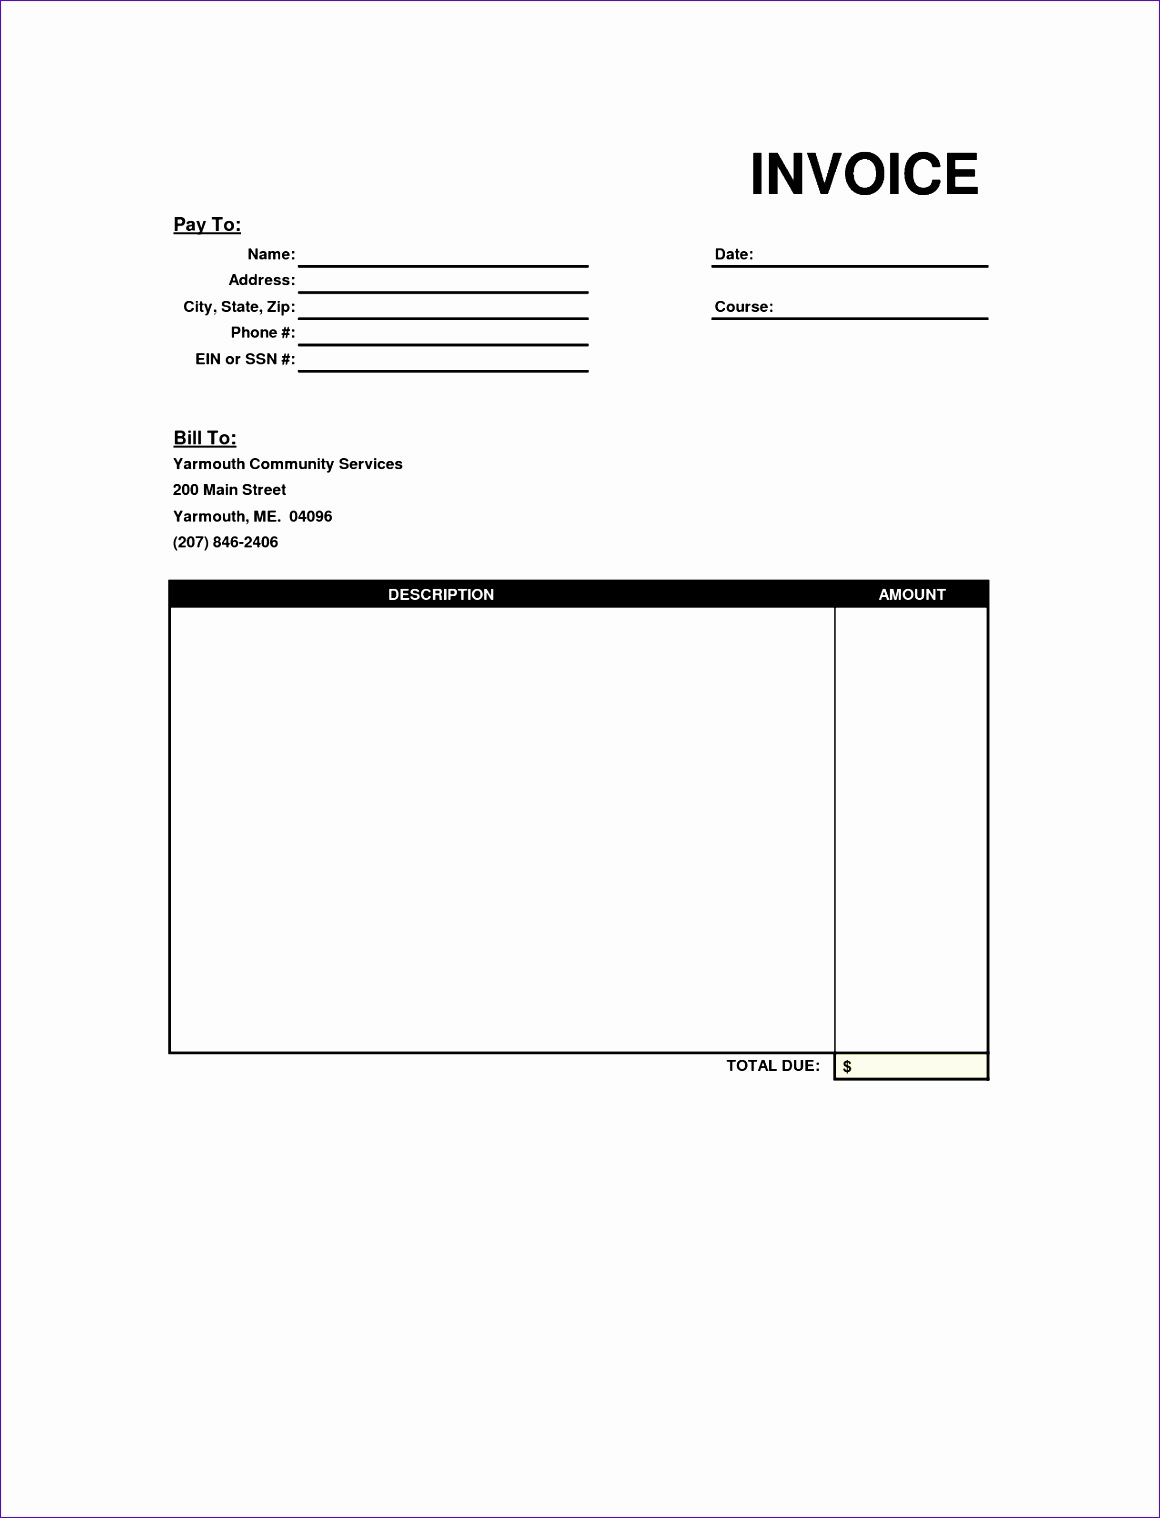 Invoice Template Excel 2003 Oswbh Luxury Blank Invoice Template Word